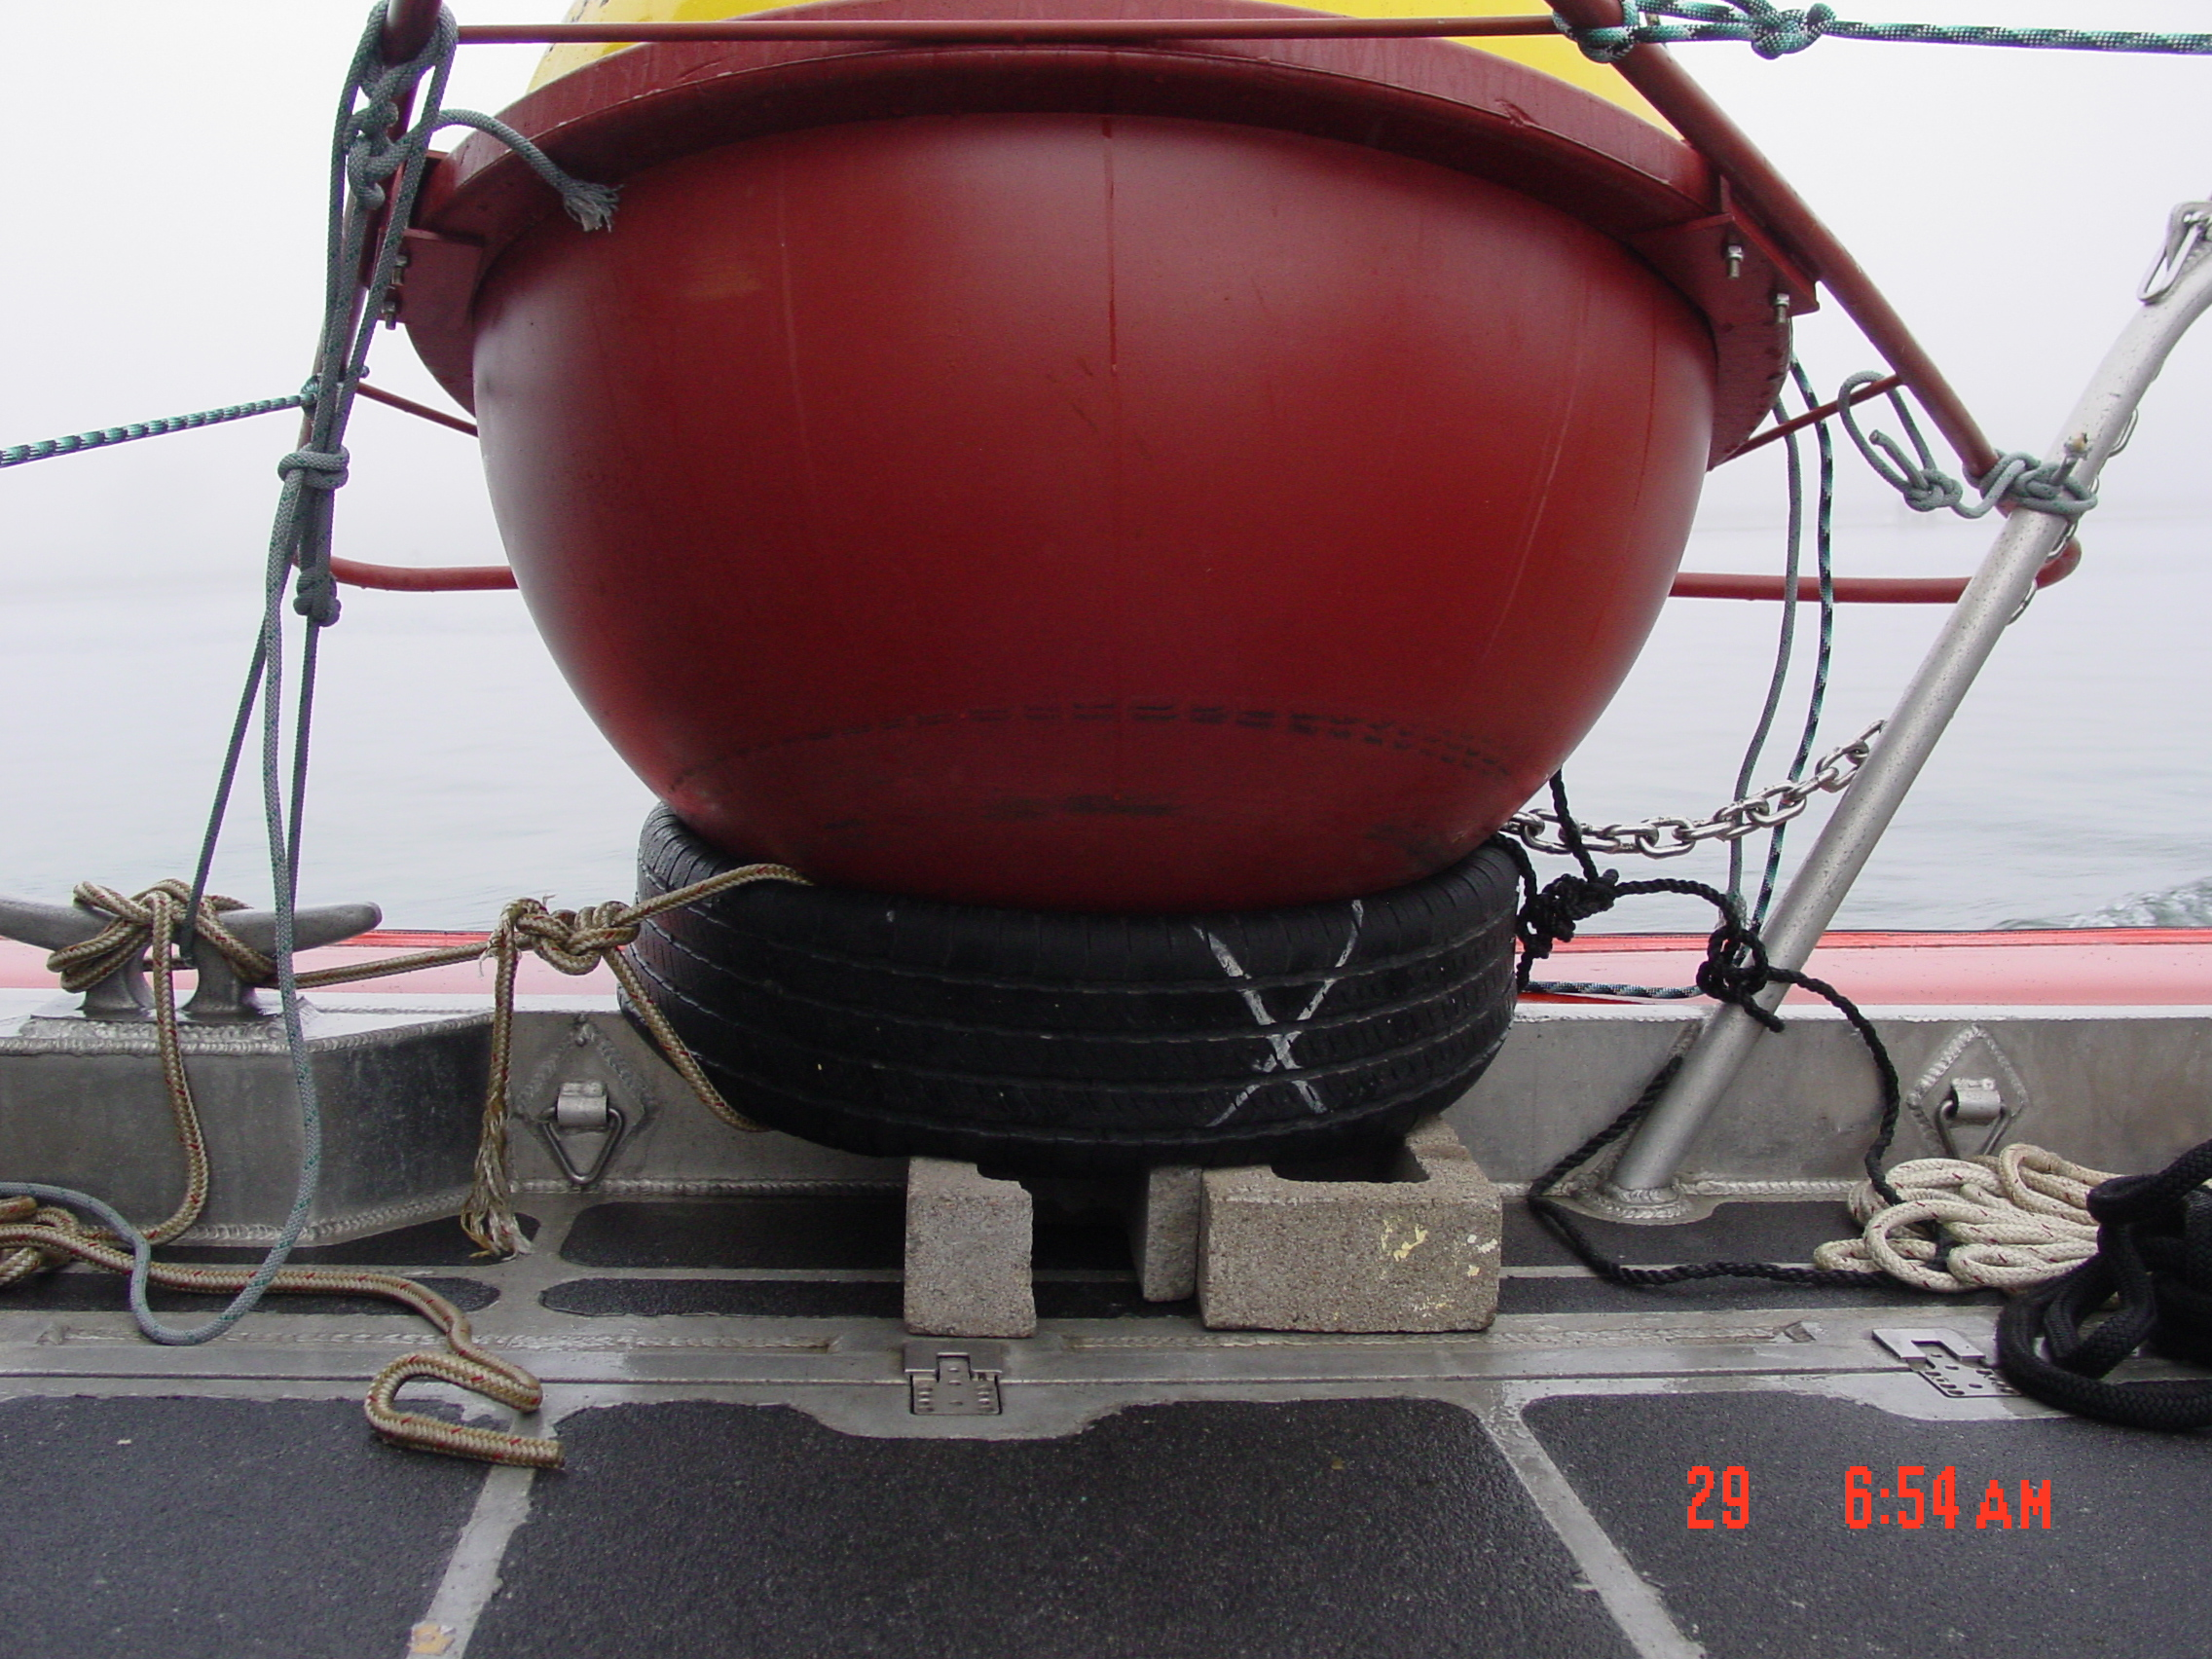 Buoy secured to side of boat